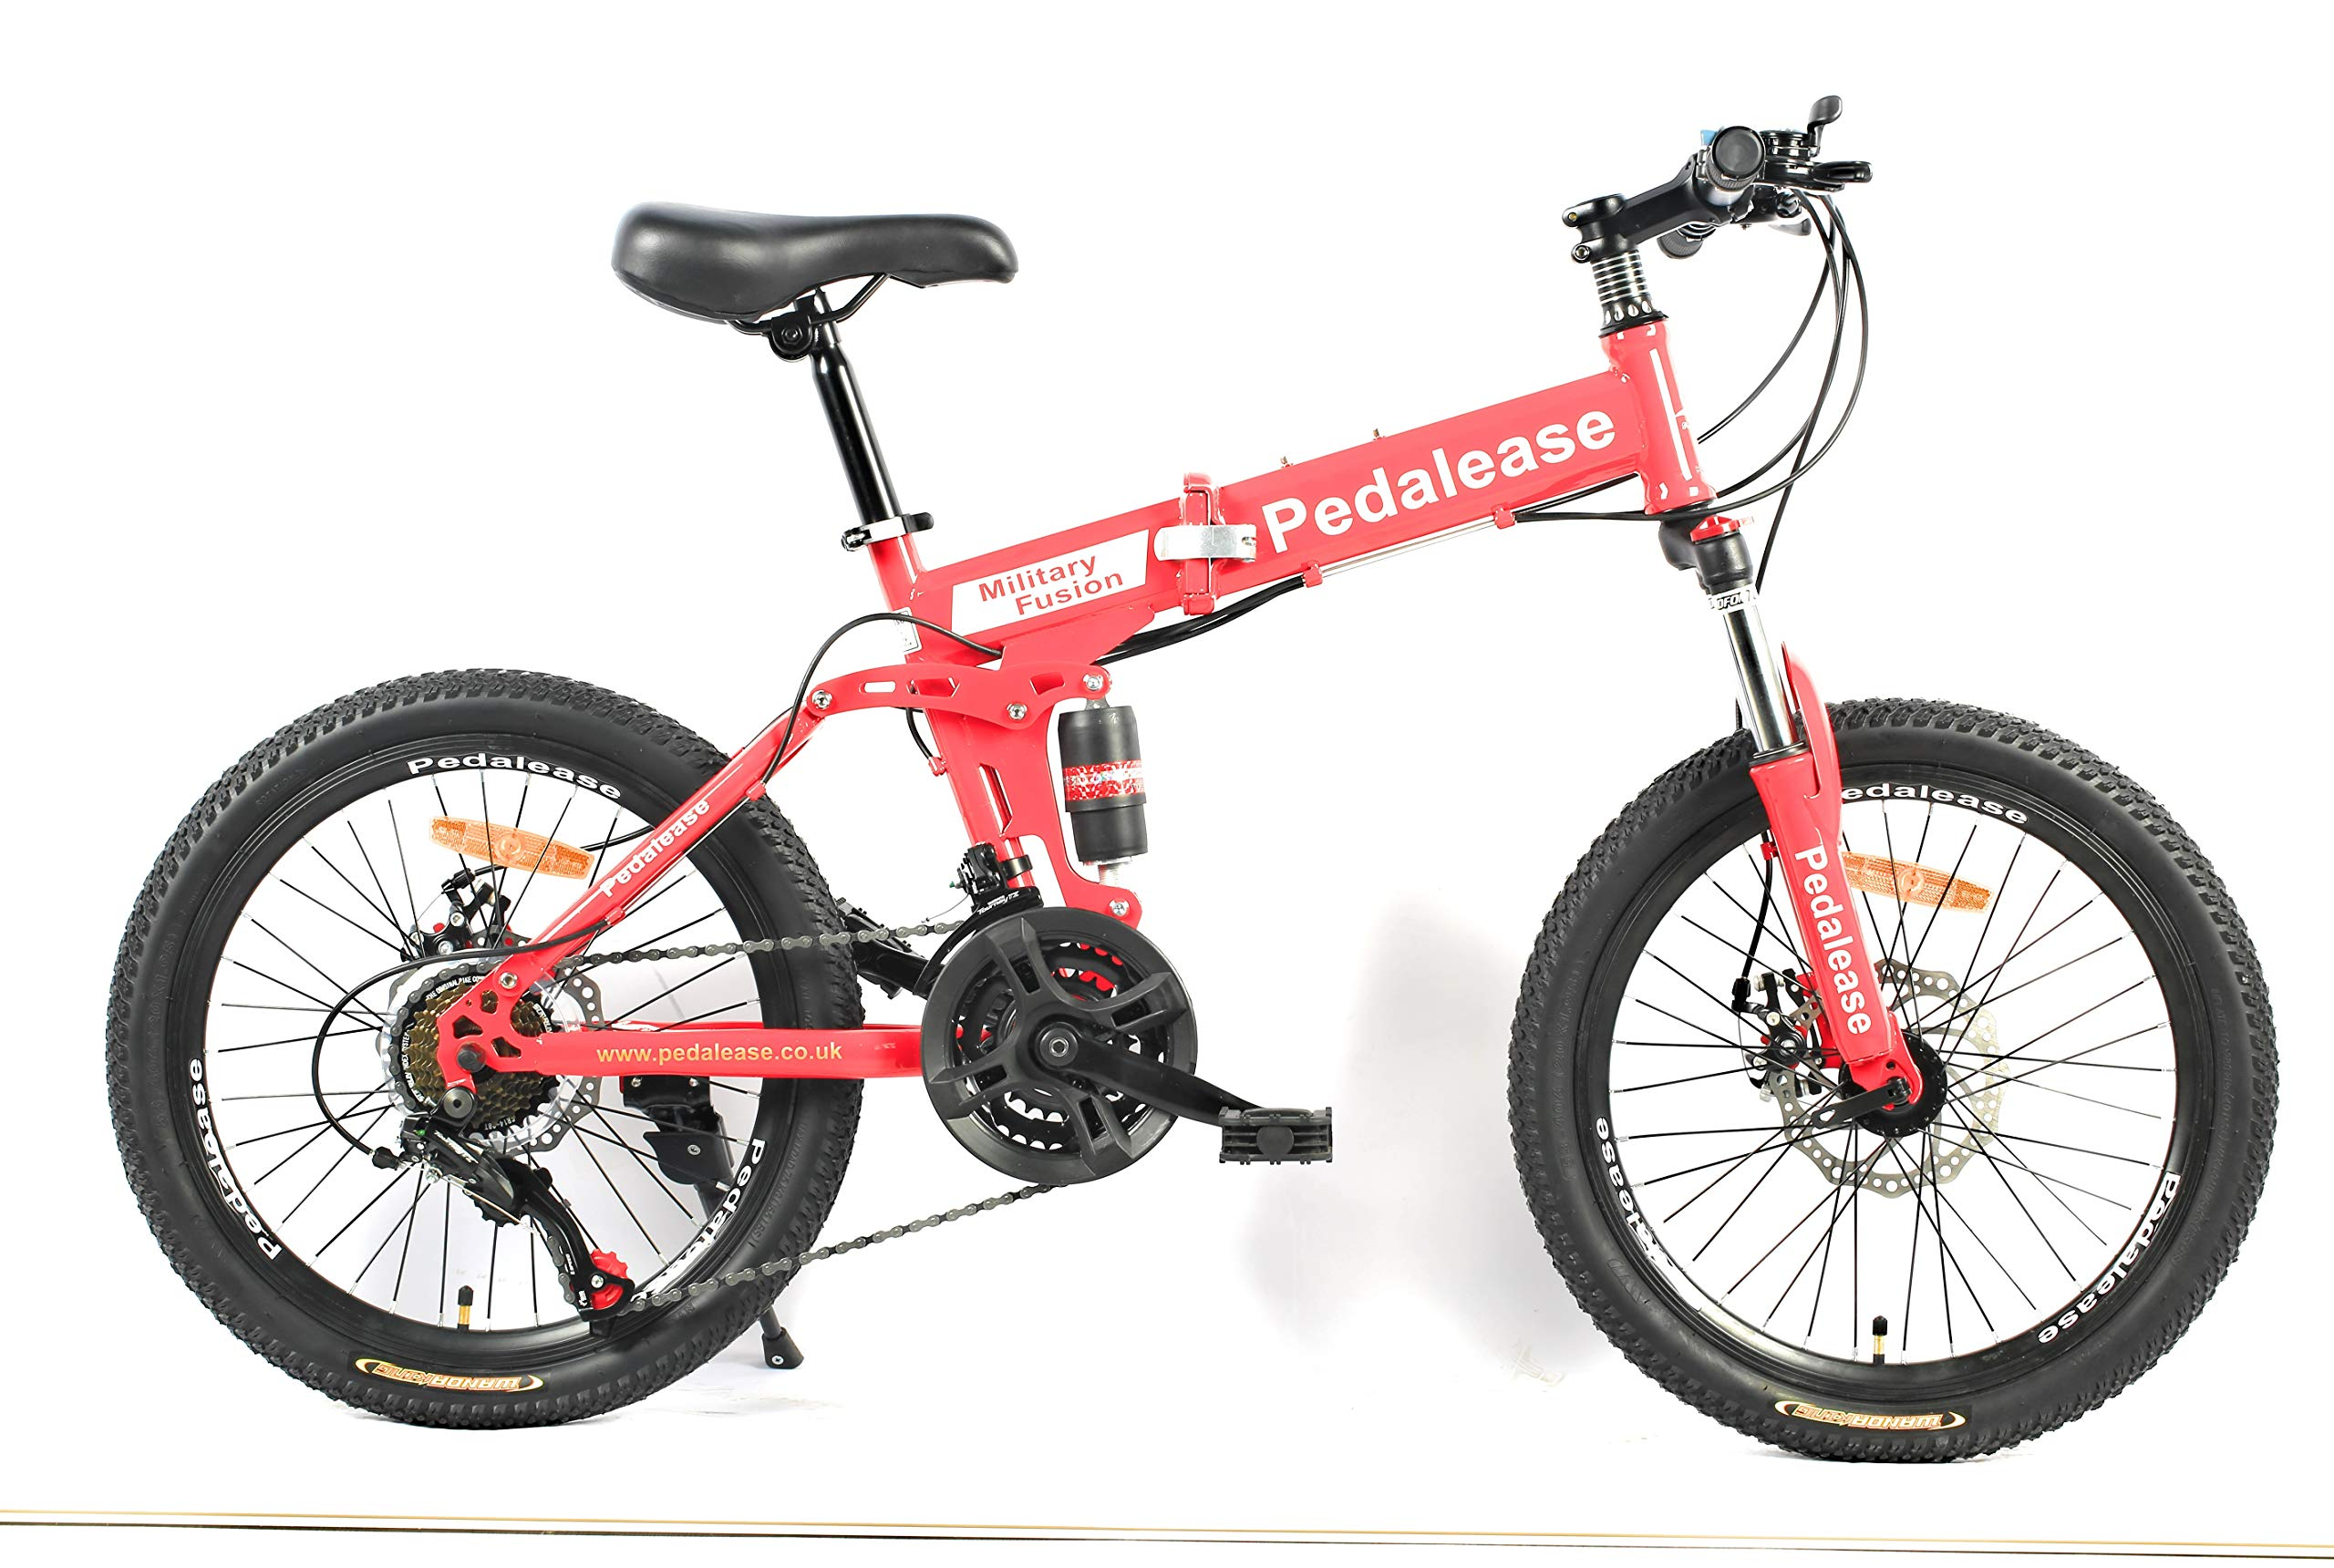 PedalEase Military Folding Mountain Bike Red Colour 20 inch Wheels product image